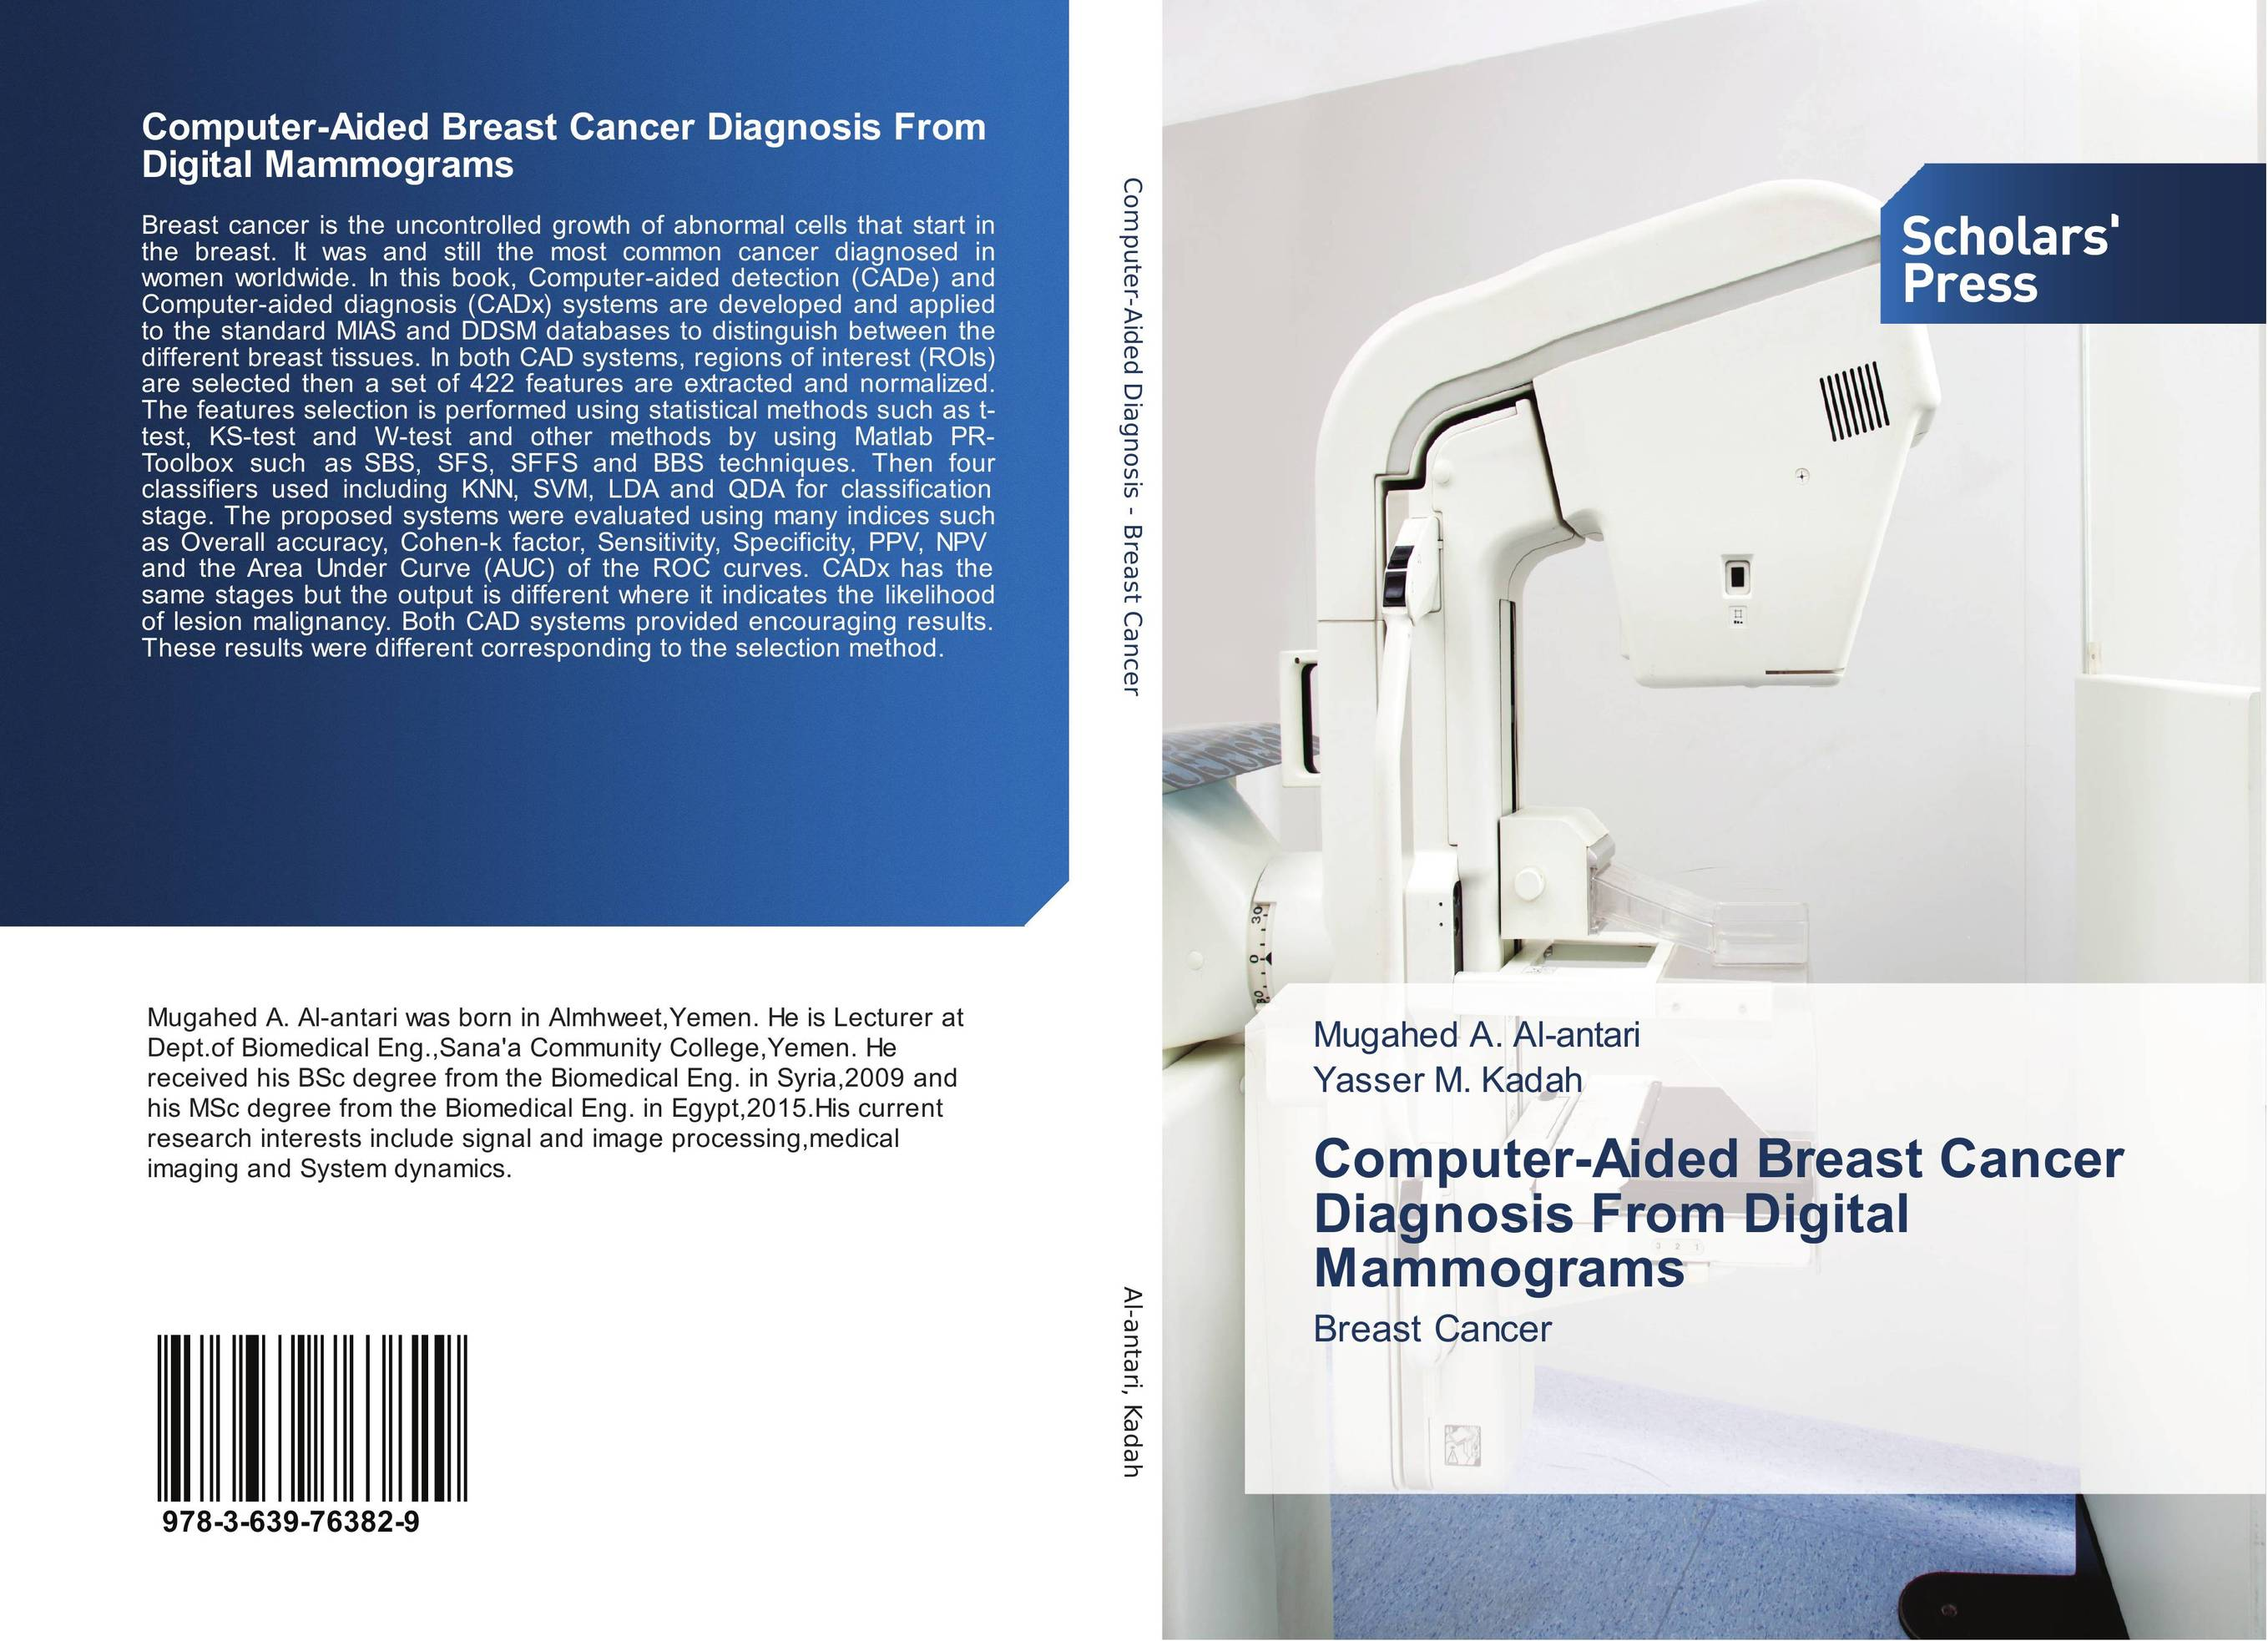 Computer-Aided Breast Cancer Diagnosis From Digital Mammograms breast cancer self exam device with the physical method and high accuracy